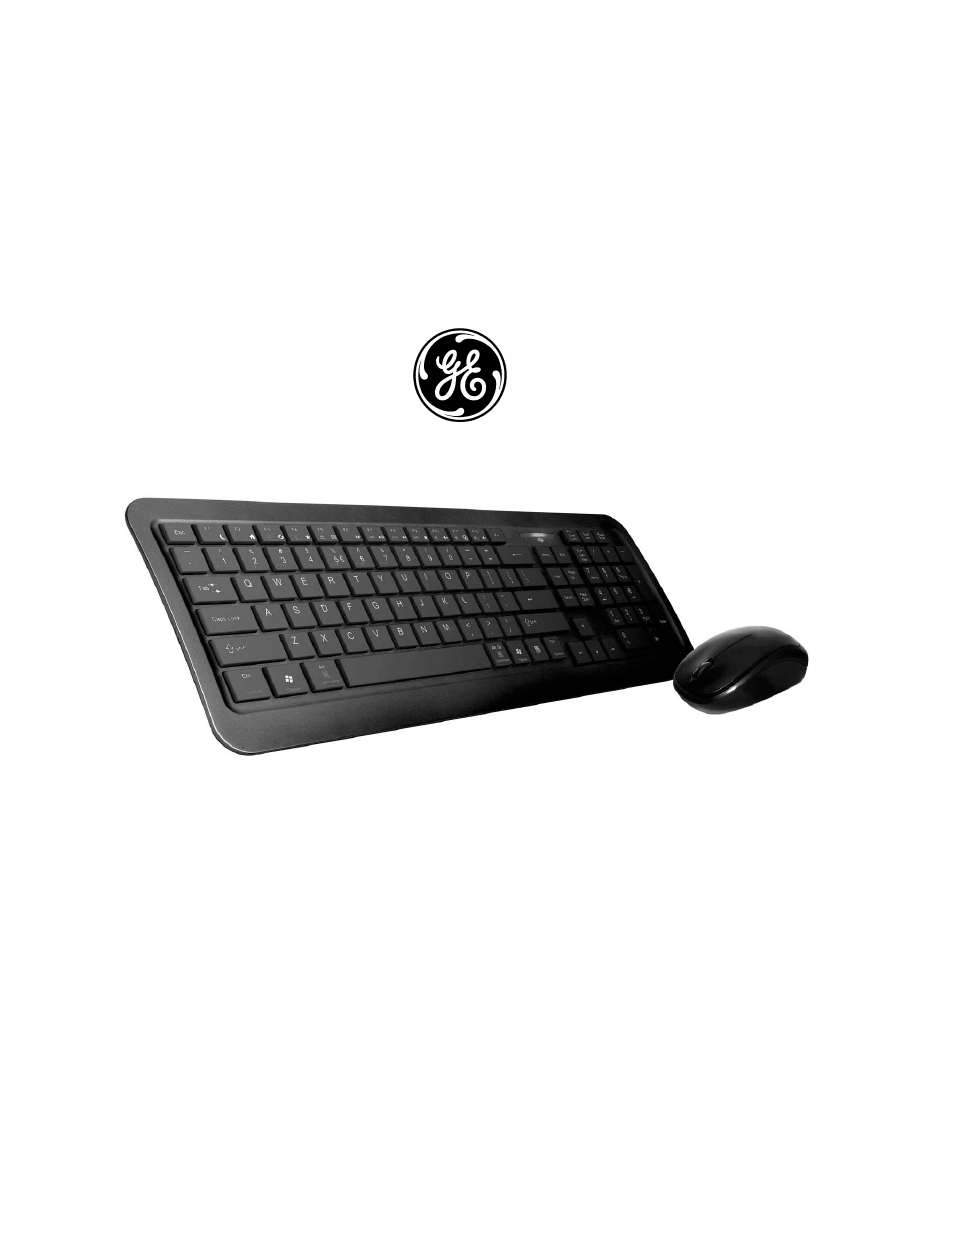 GE 98614 GE Wireless Thin-Profile Keyboard and Mouse User